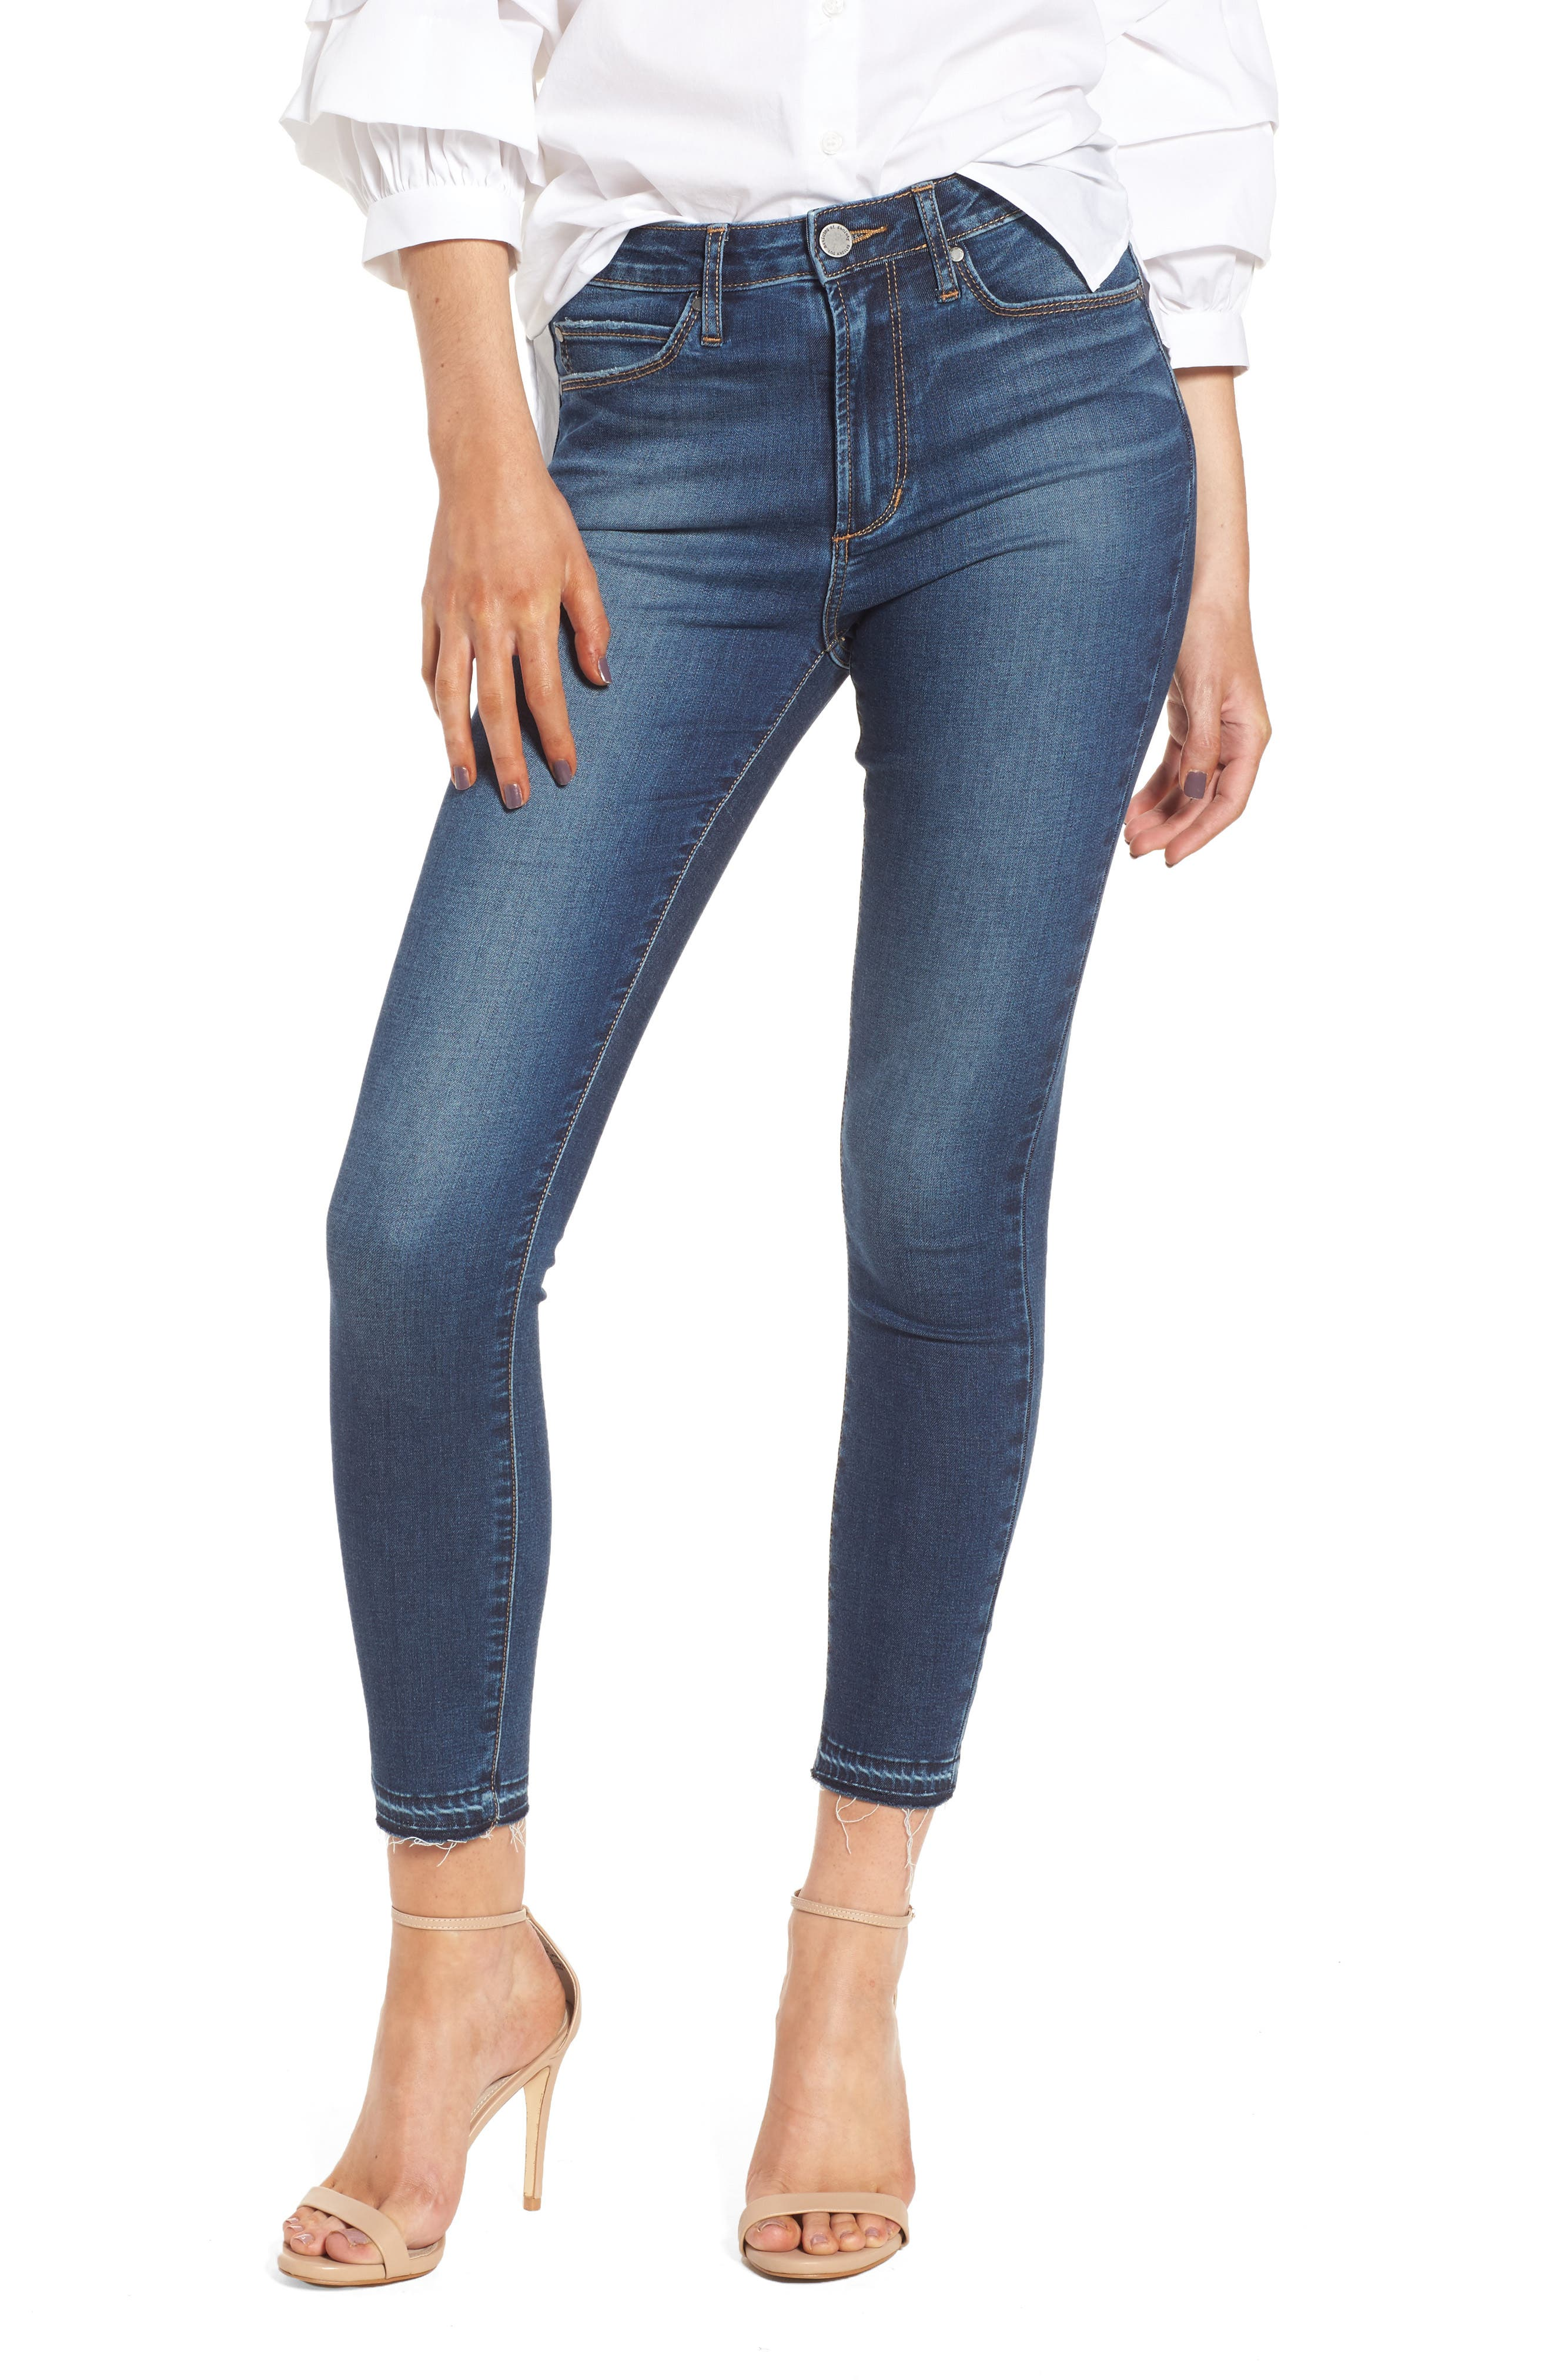 Articles of Society Heather High Waist Crop Skinny Jeans (Bilbao)